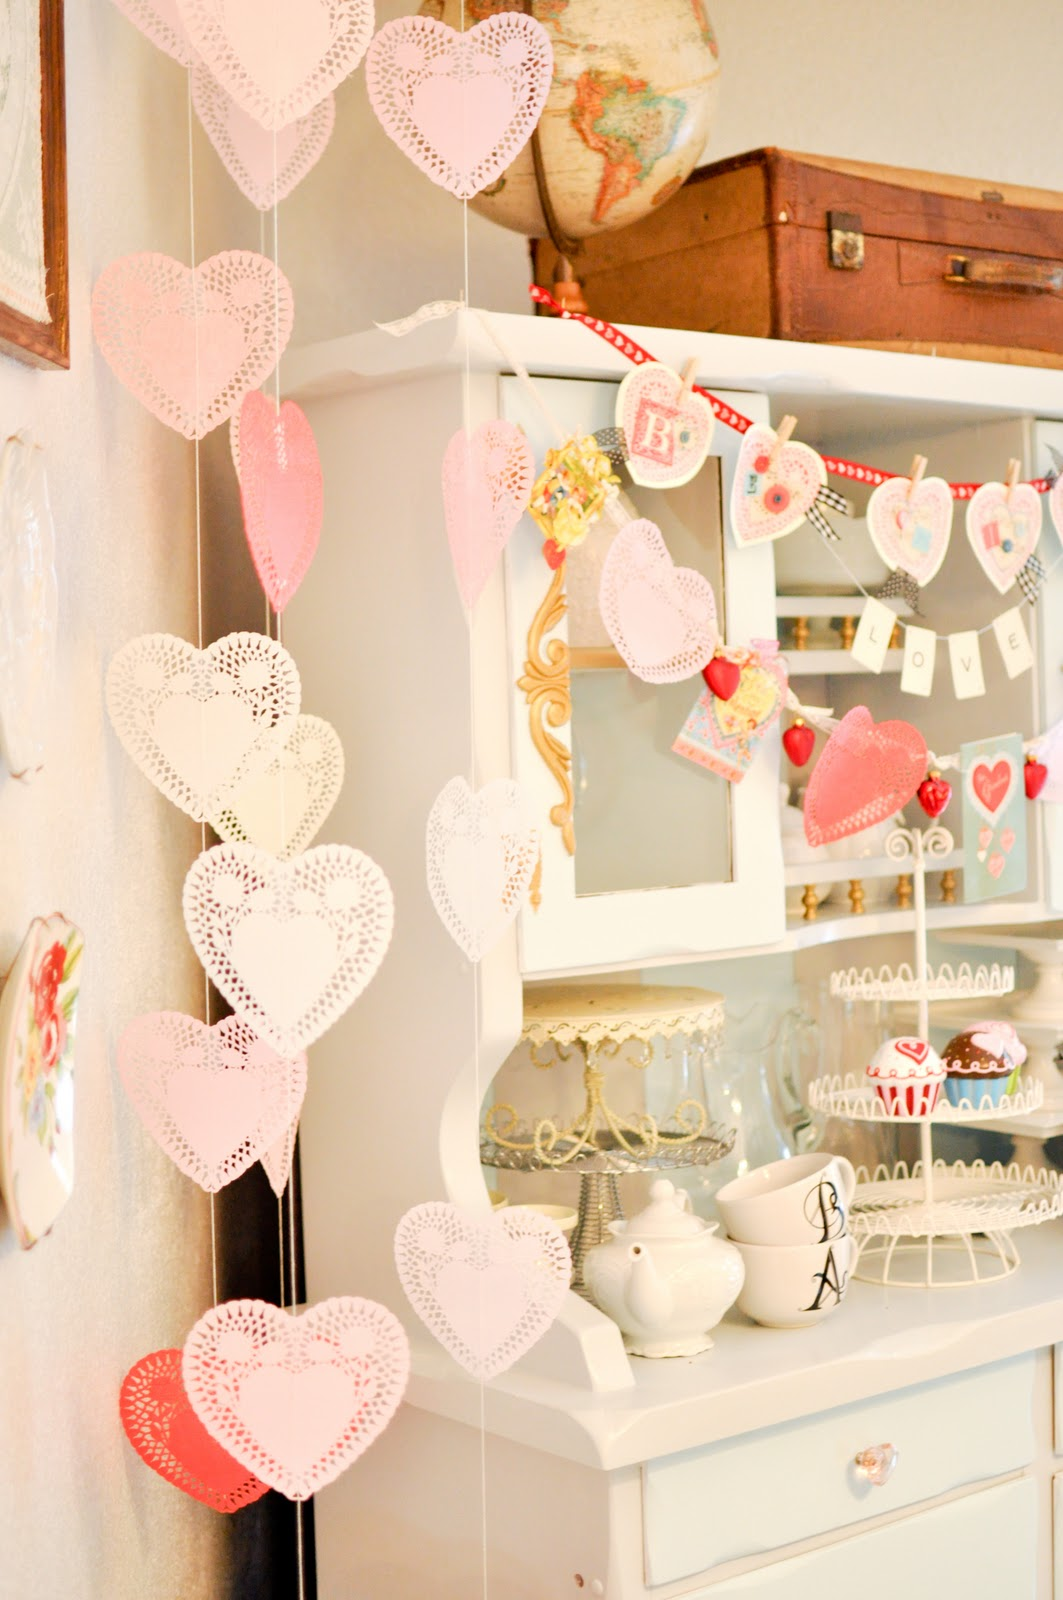 20 valentine 39 s day decorations ideas for your home